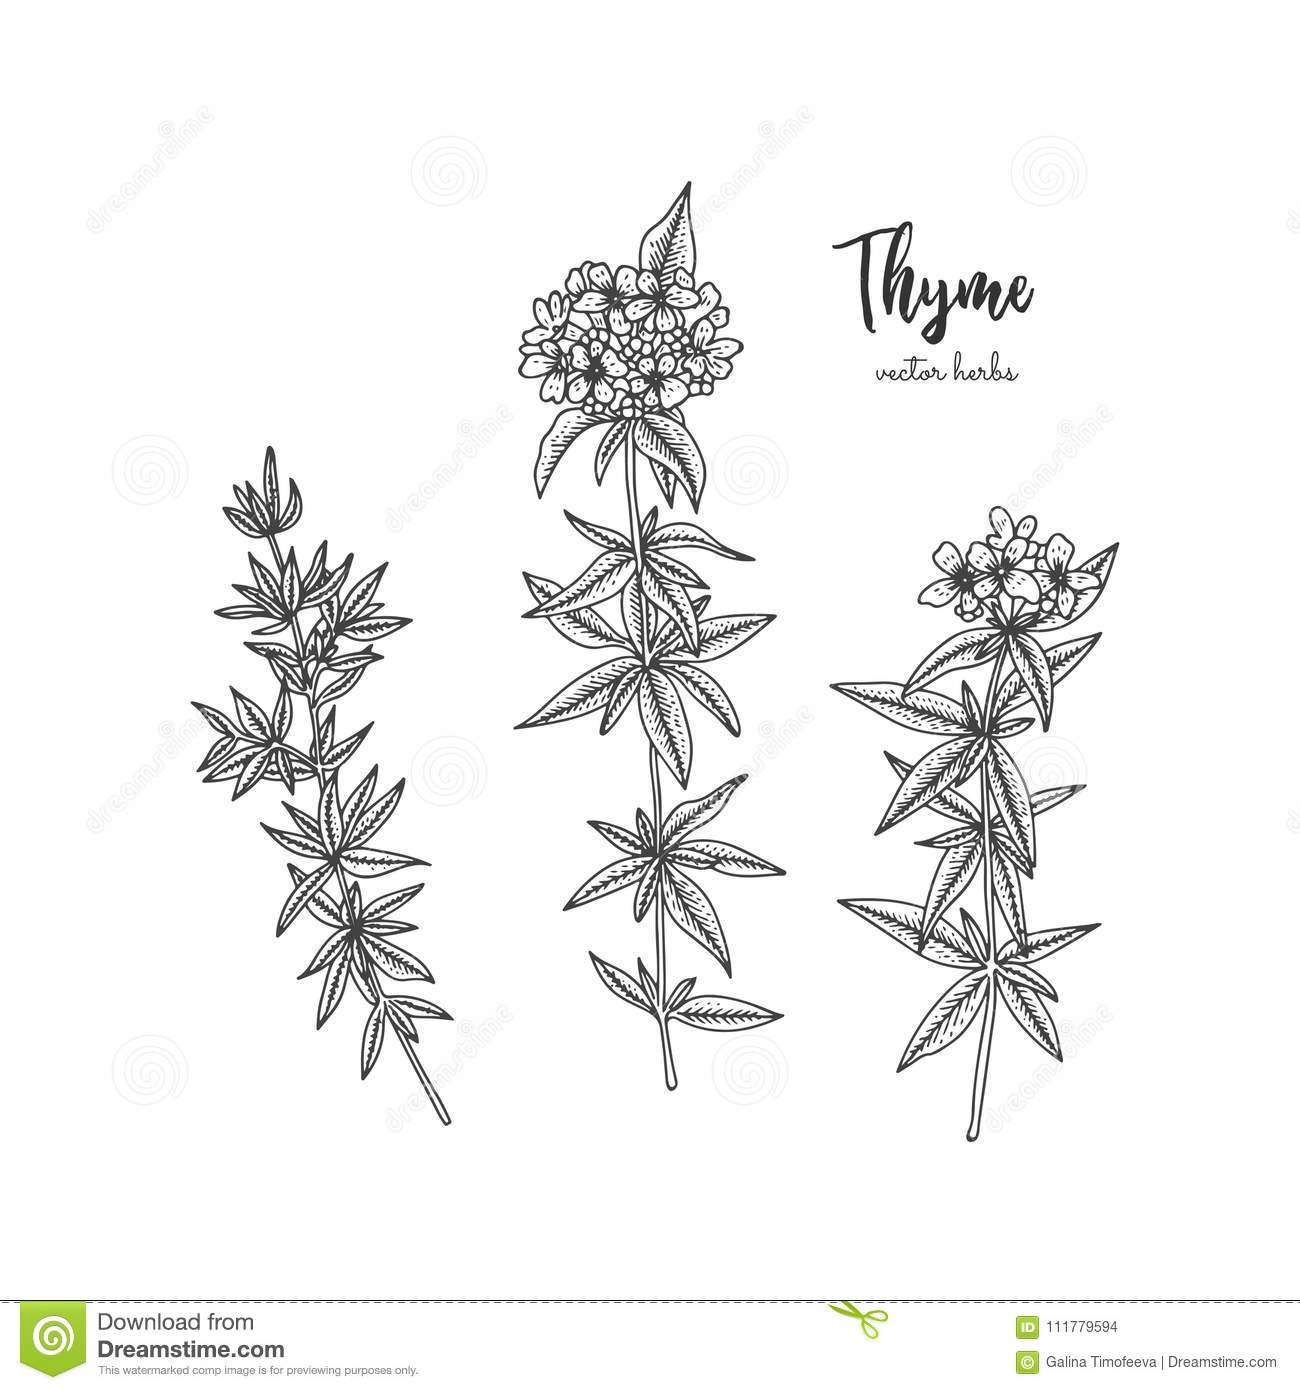 Vintage botanical engraving illustration of thyme. Beauty and spa, cosmetic ingredient. Design elements for promotion